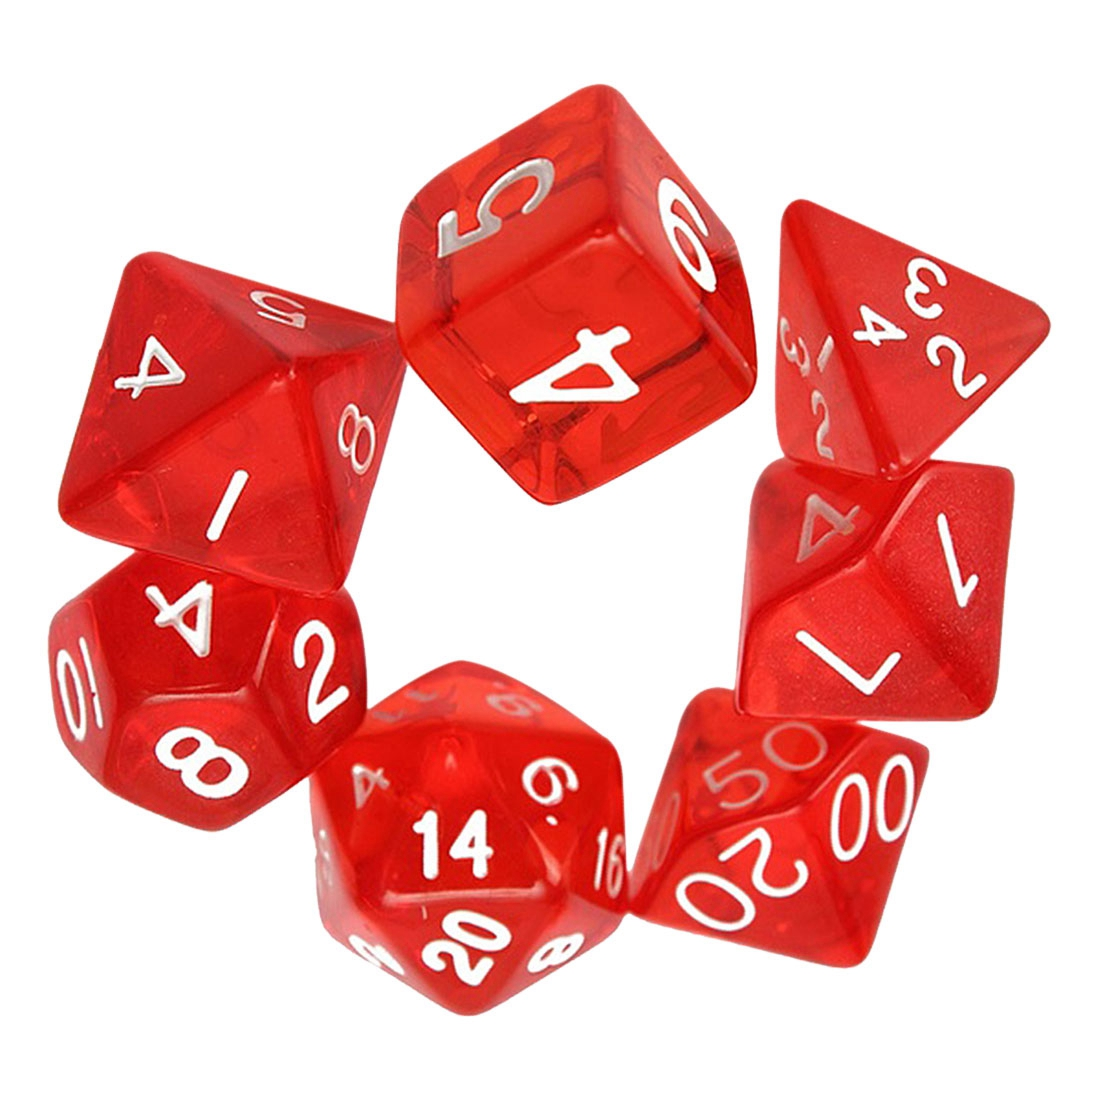 Unusual Dice Make Resume Searchable Photos Entry Level Resume